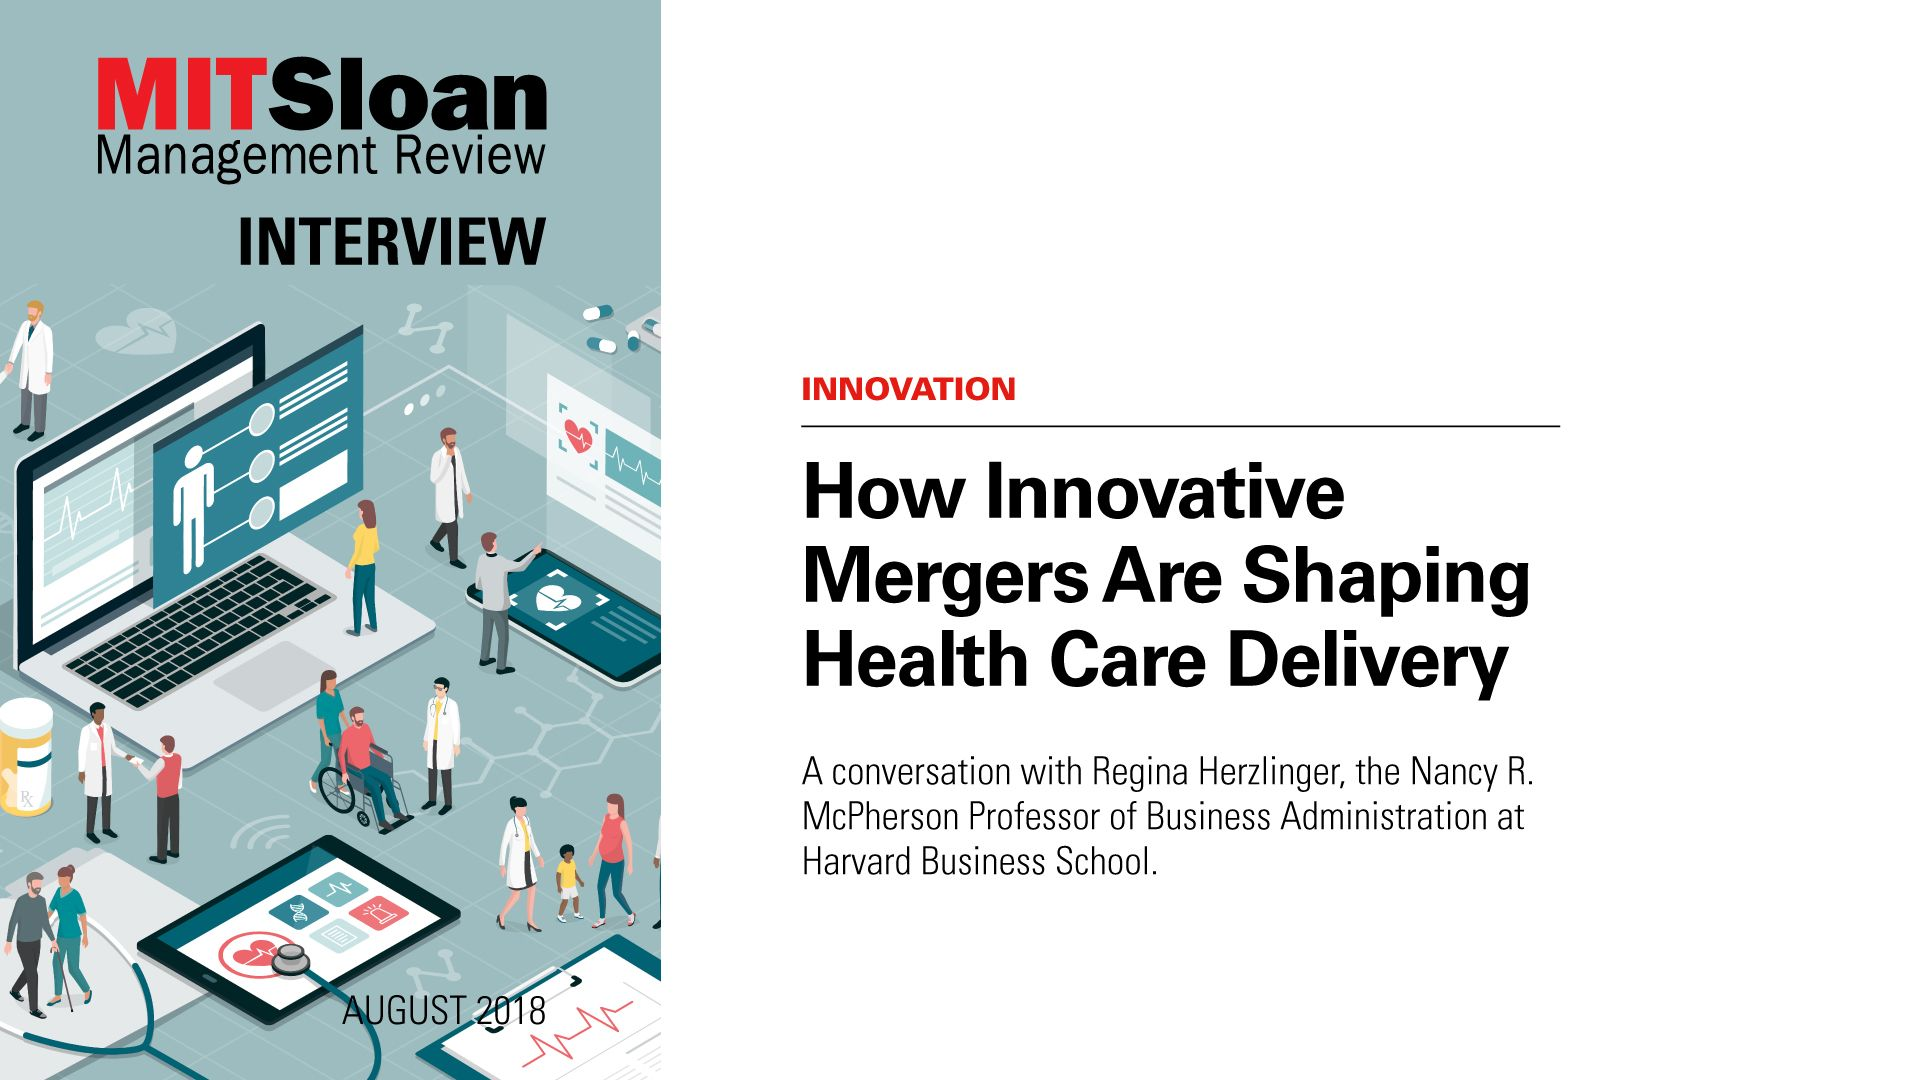 How innovative mergers are shaping health care delivery